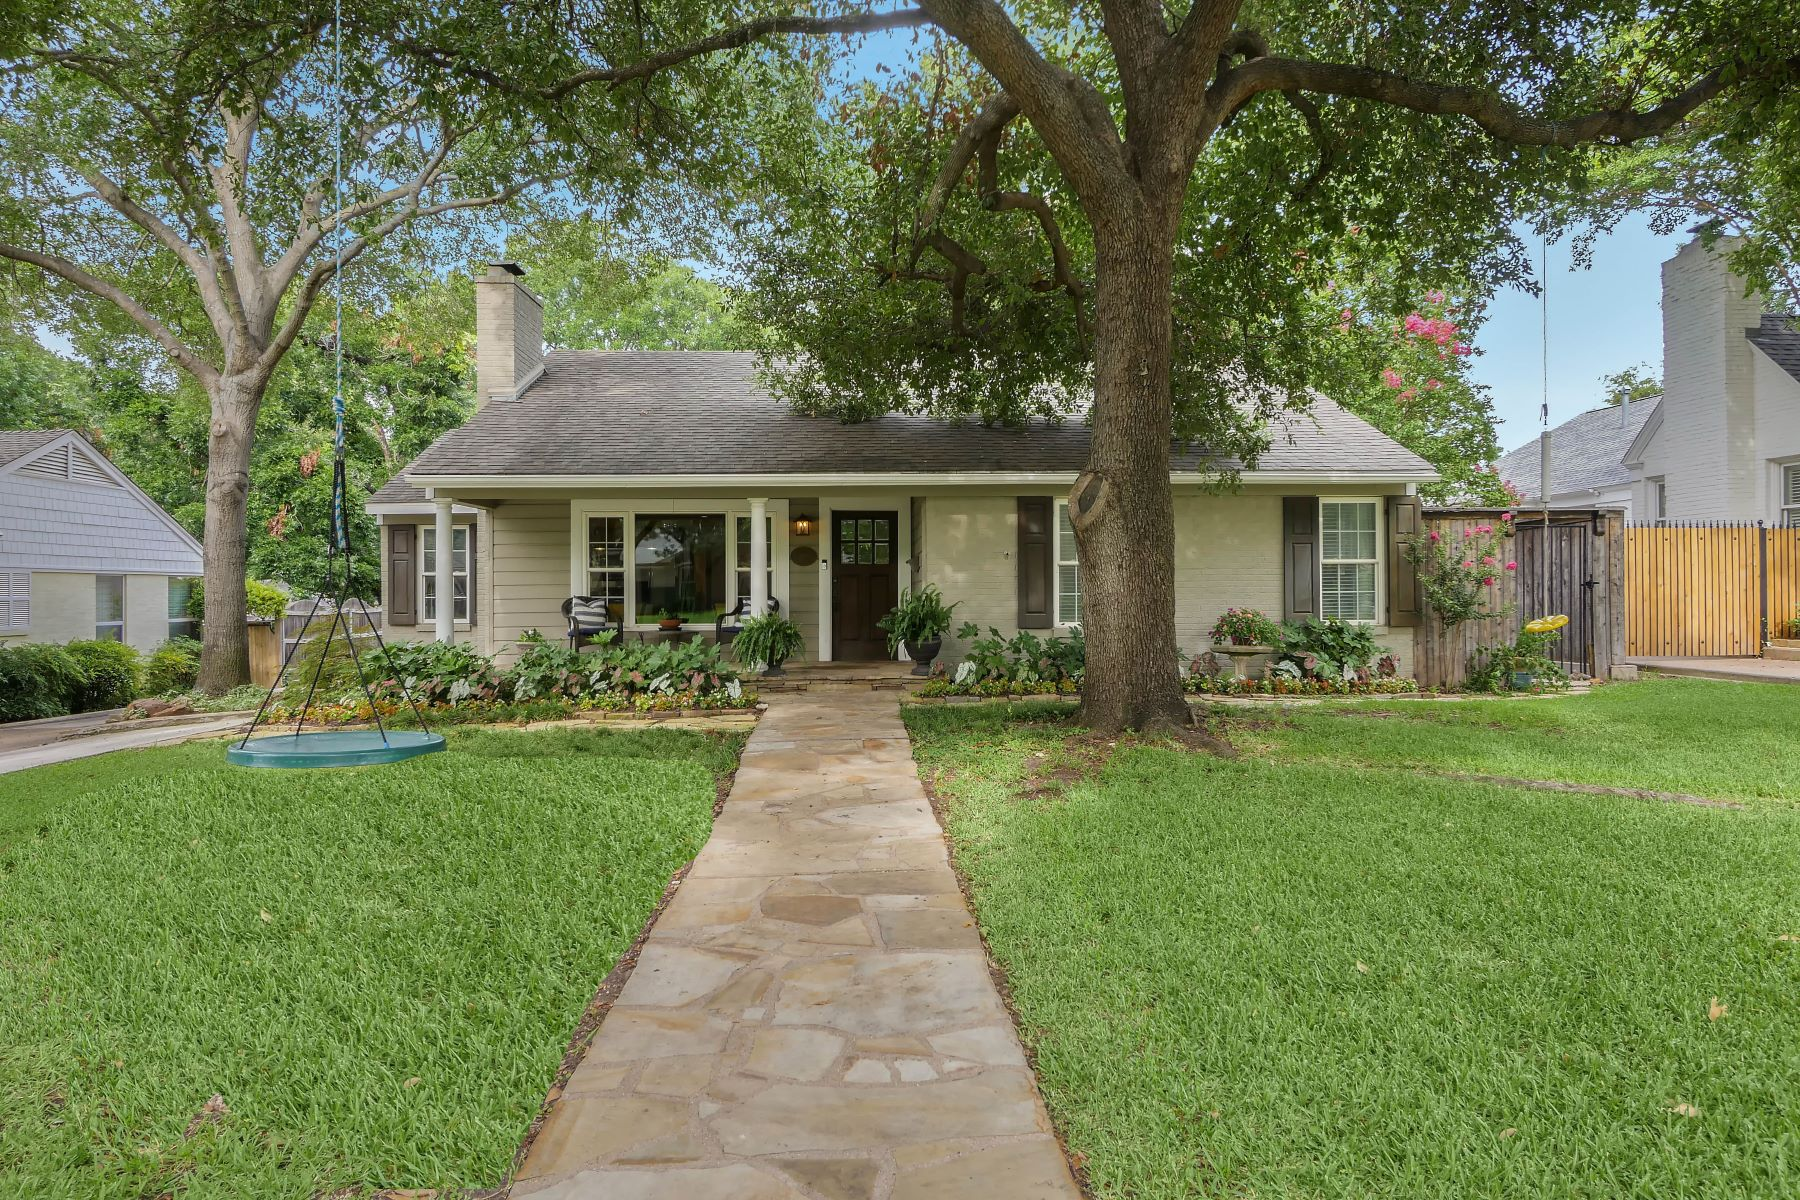 Single Family Homes for Sale at 2621 Boyd Avenue, Fort Worth, TX, 76109 2621 Boyd Avenue Fort Worth, Texas 76109 United States